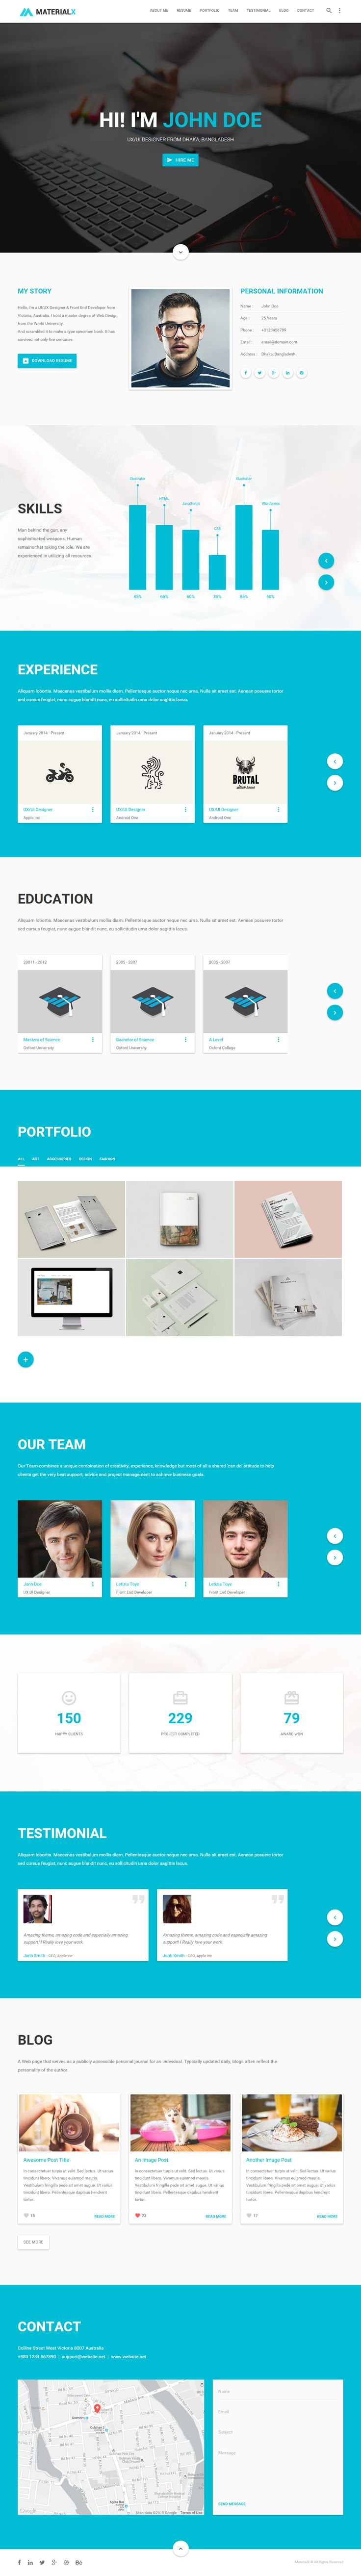 MaterialX is Premium full Responsive Resume HTML5 template. Retina Ready. Bootstrap 3. Material Design. One Page. Google Map. Test free demo at: http://www.responsivemiracle.com/cms/materialx-premium-responsive-material-design-personal-html5-template/